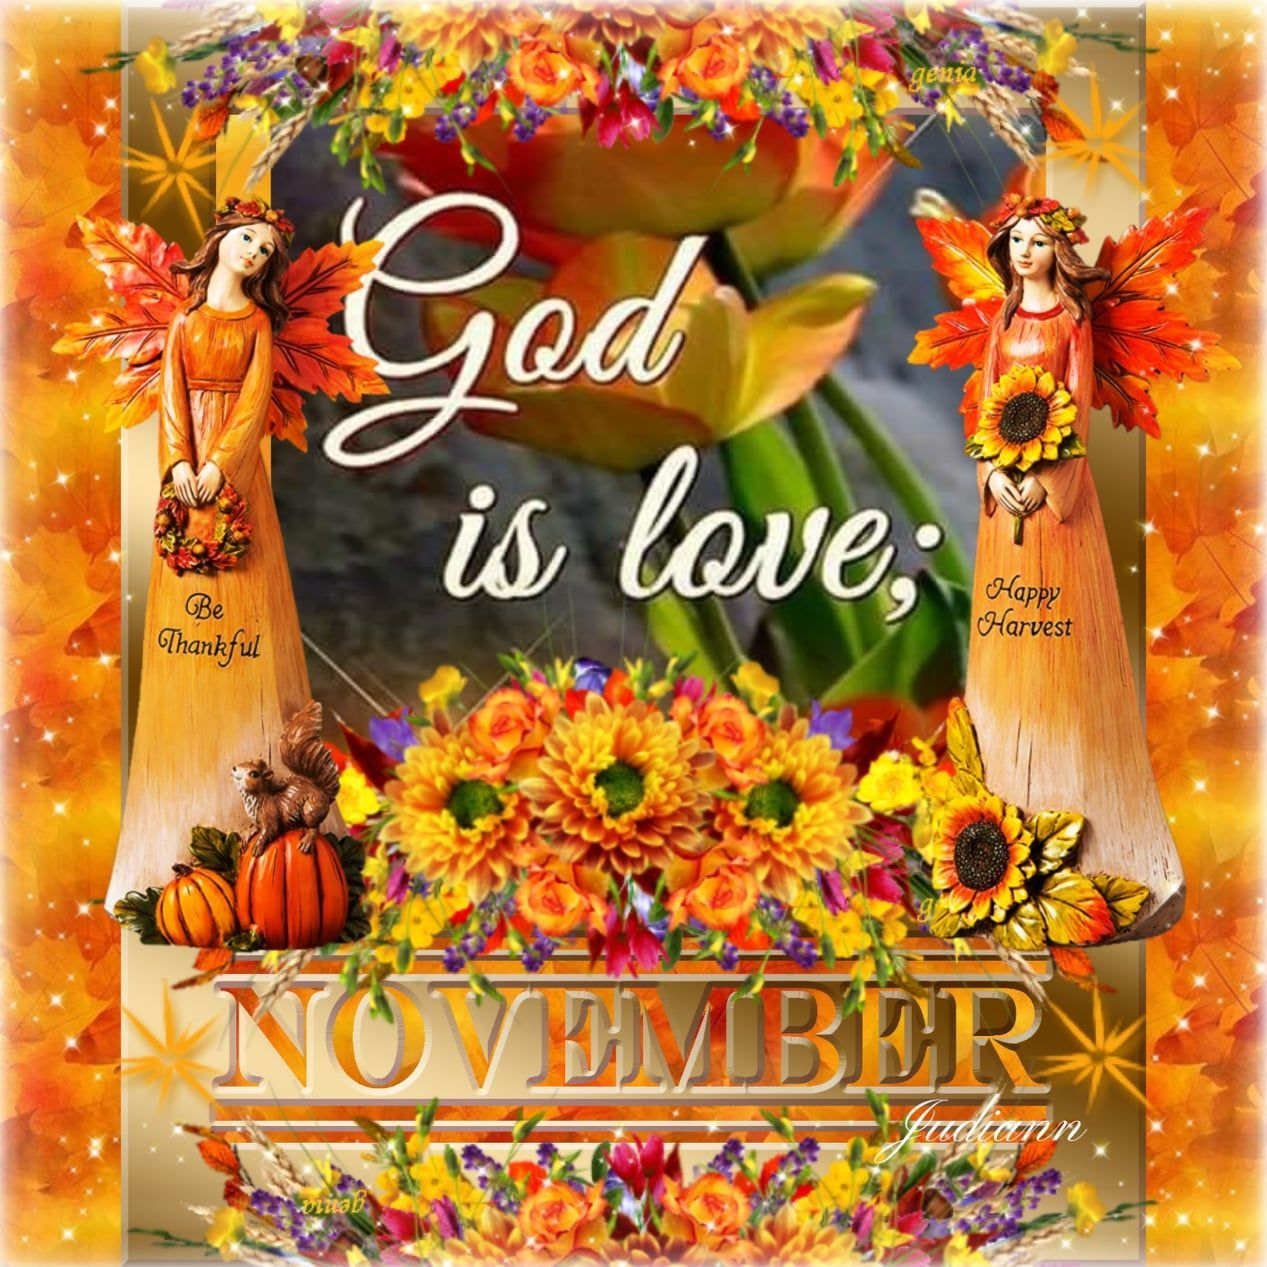 God Is Love November Quote Pictures Photos And Images For Facebook Tumblr Pinterest And Twitter In 2020 November Quotes Gods Love Thanksgiving Quotes Images